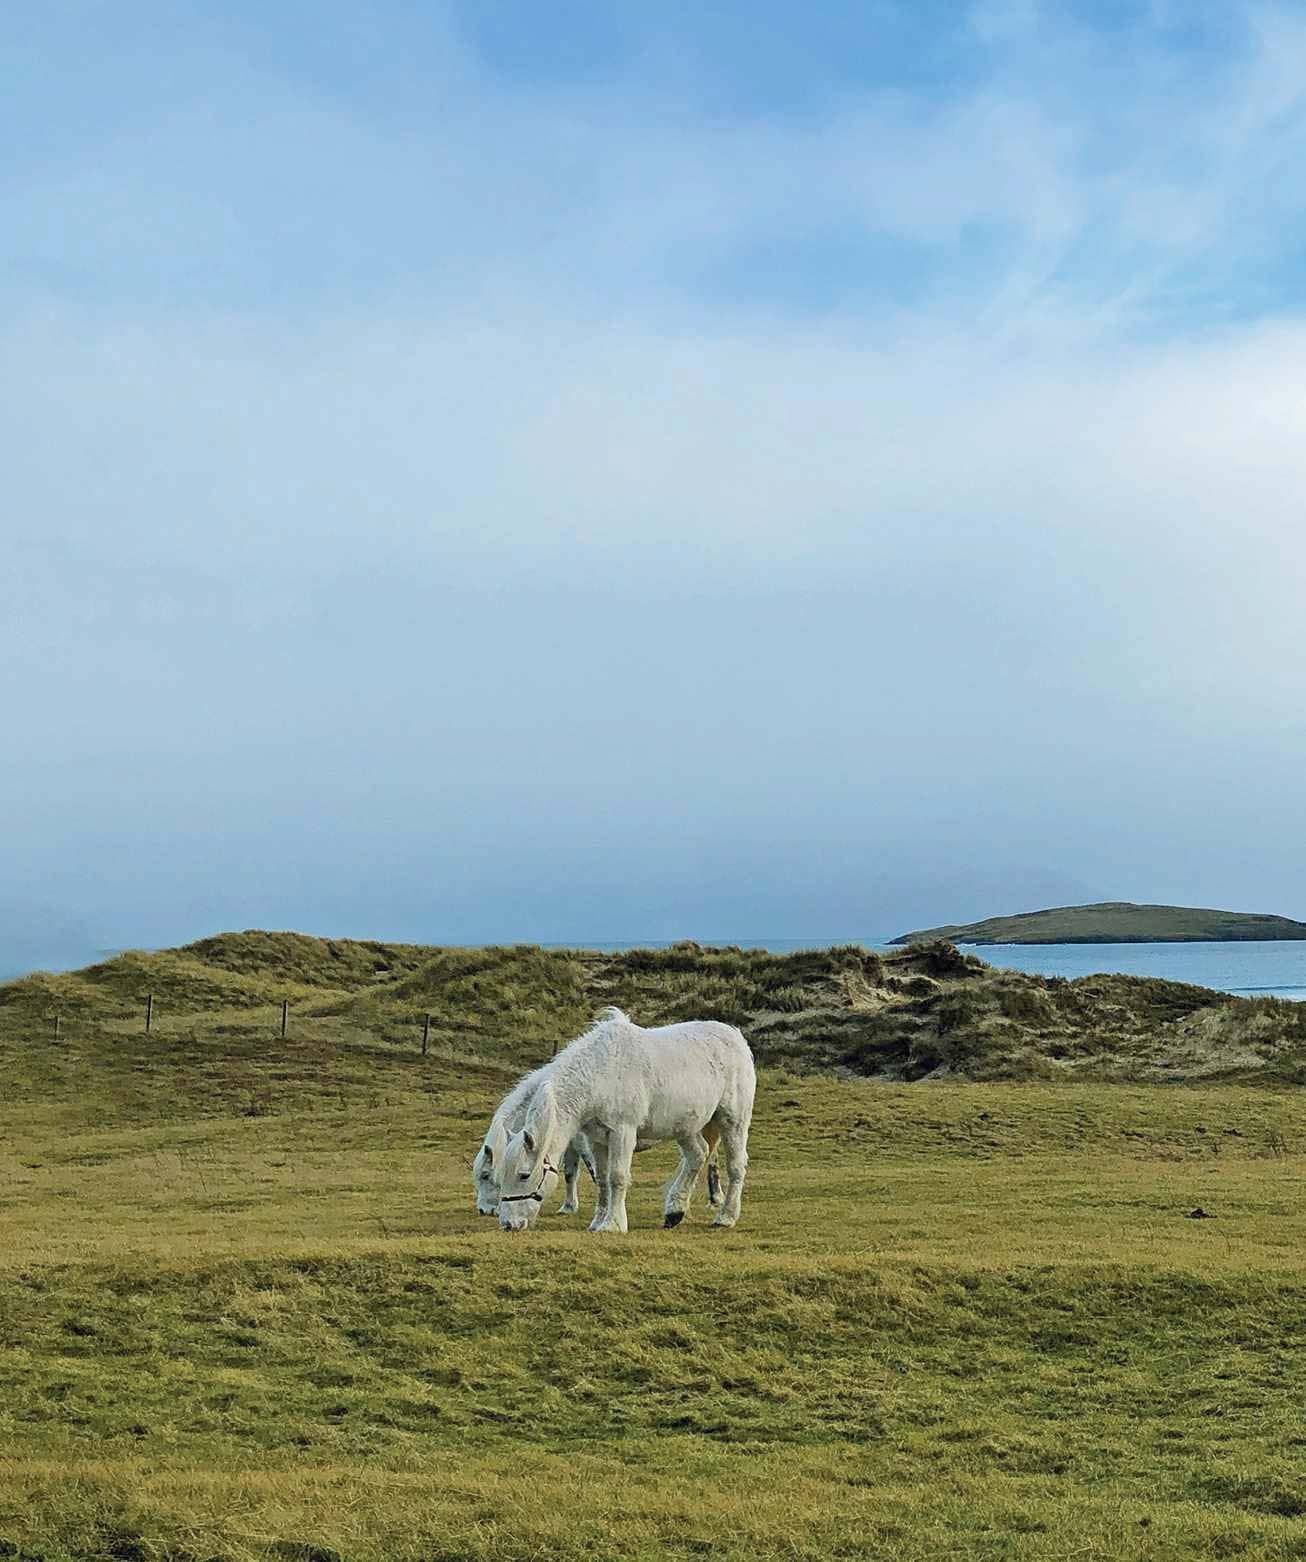 Movers, bakers & shakers - The Outer Hebrides